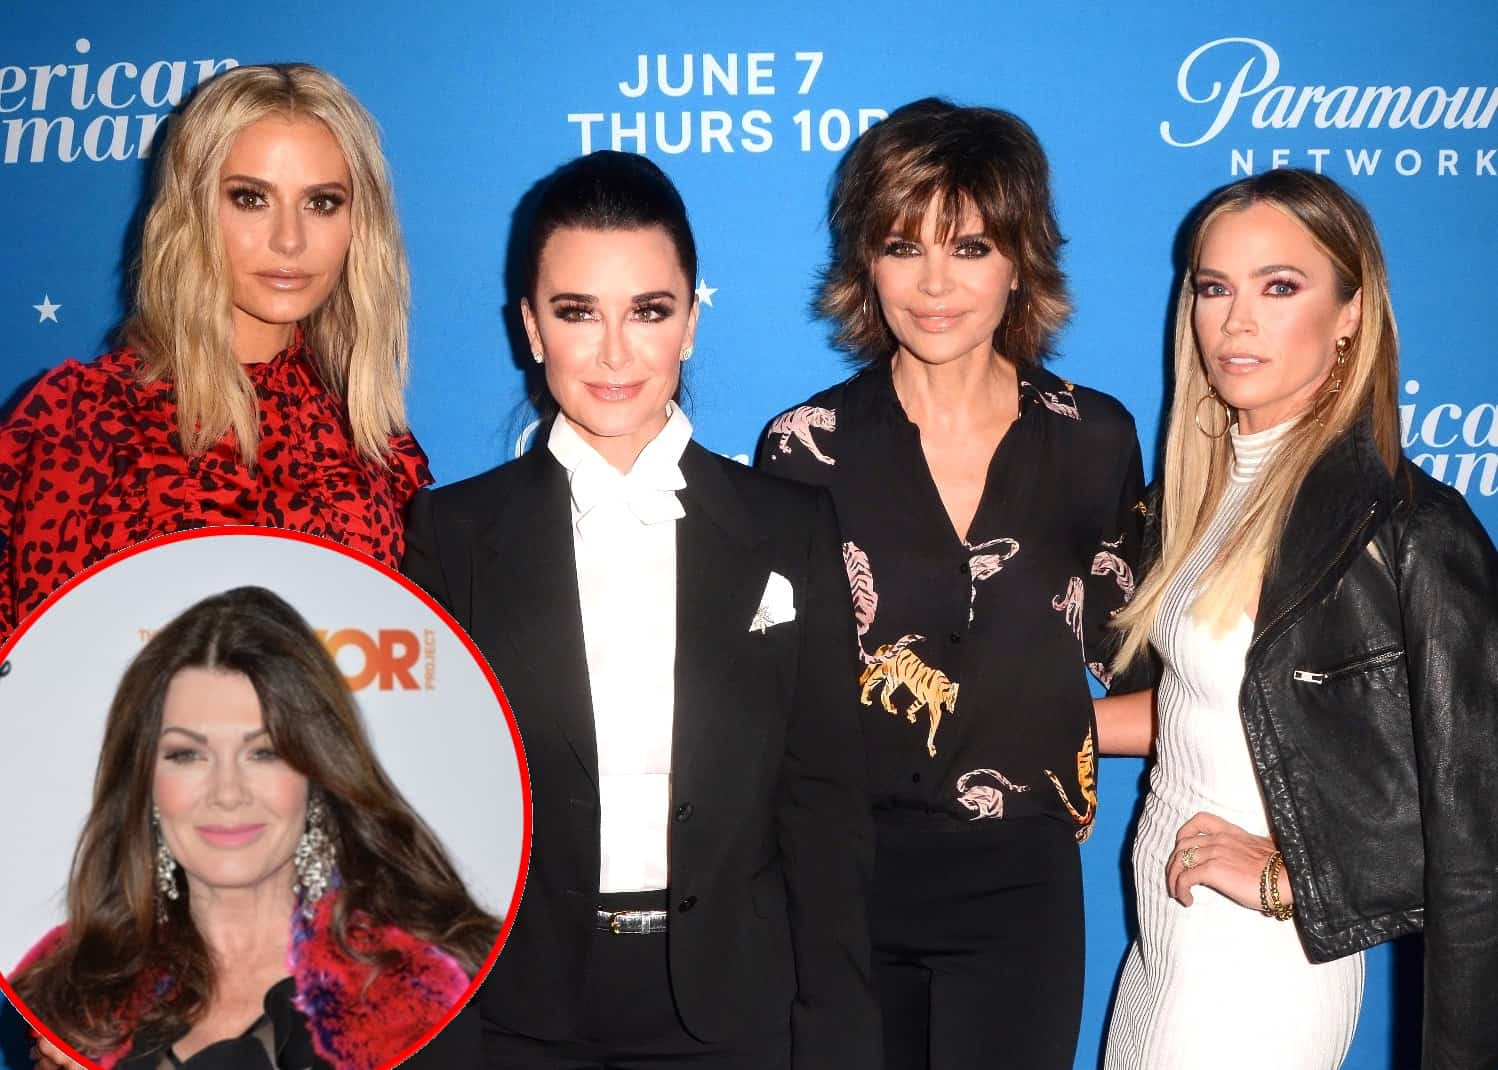 RHOBH Lisa Rinna accuses Lisa Vanderpump of acting like a diva